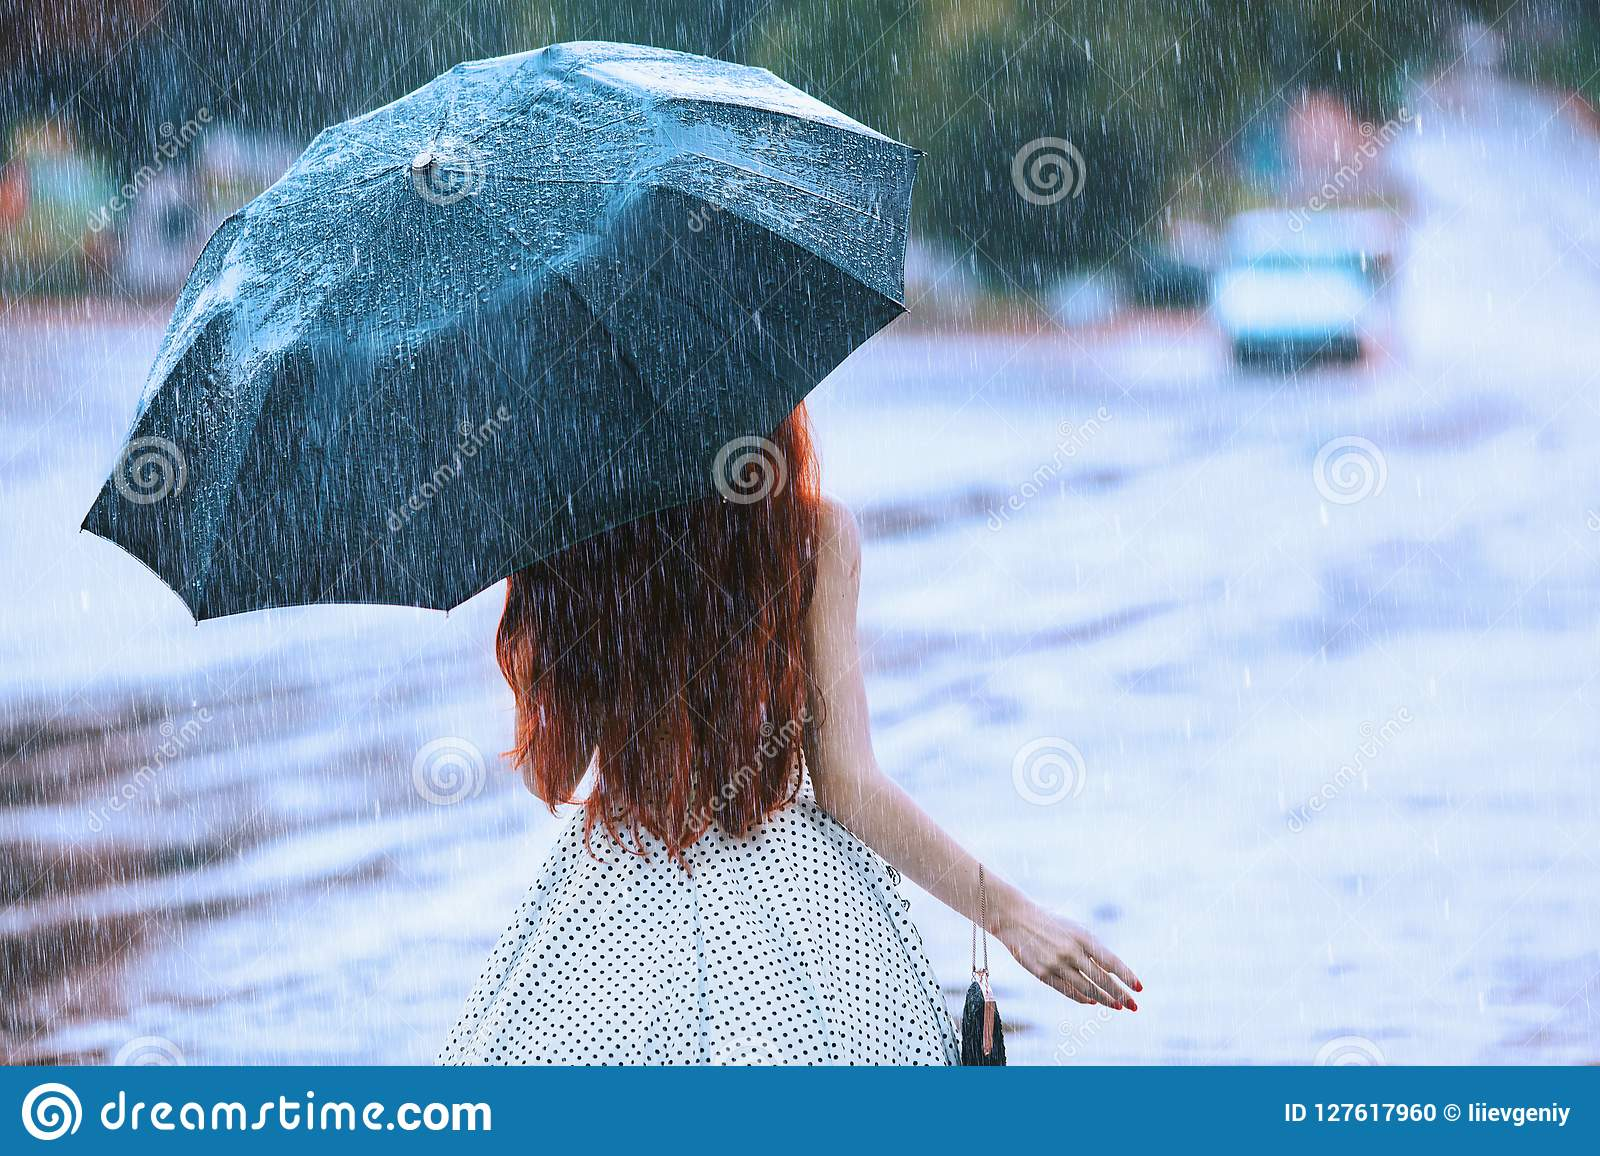 Wet weather. Autumn rain. Lonely girl in polka dots dress hold black umbrella. Raining in city. Wet umbrella against the backdrop